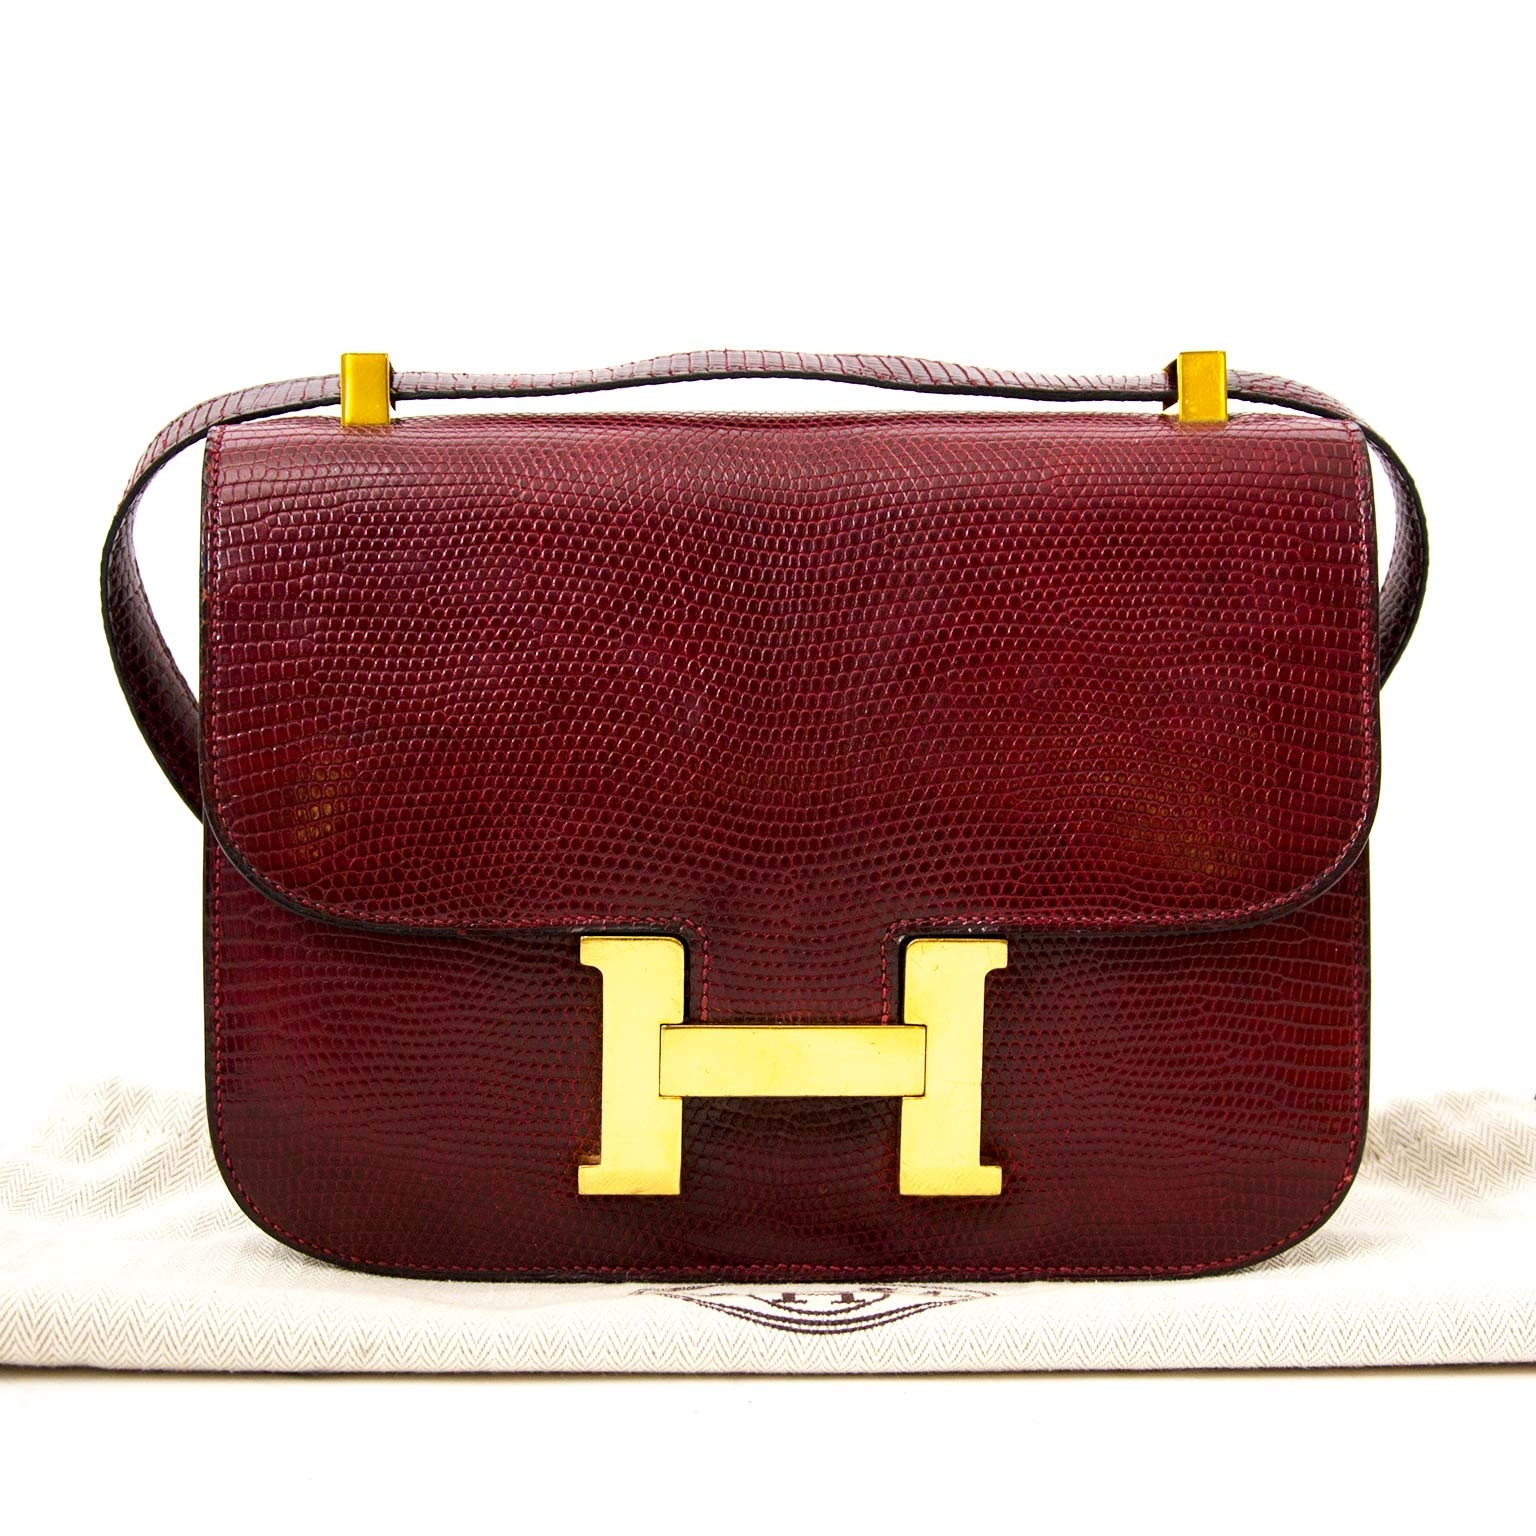 We buy and sell your authentic designer bags for the best price